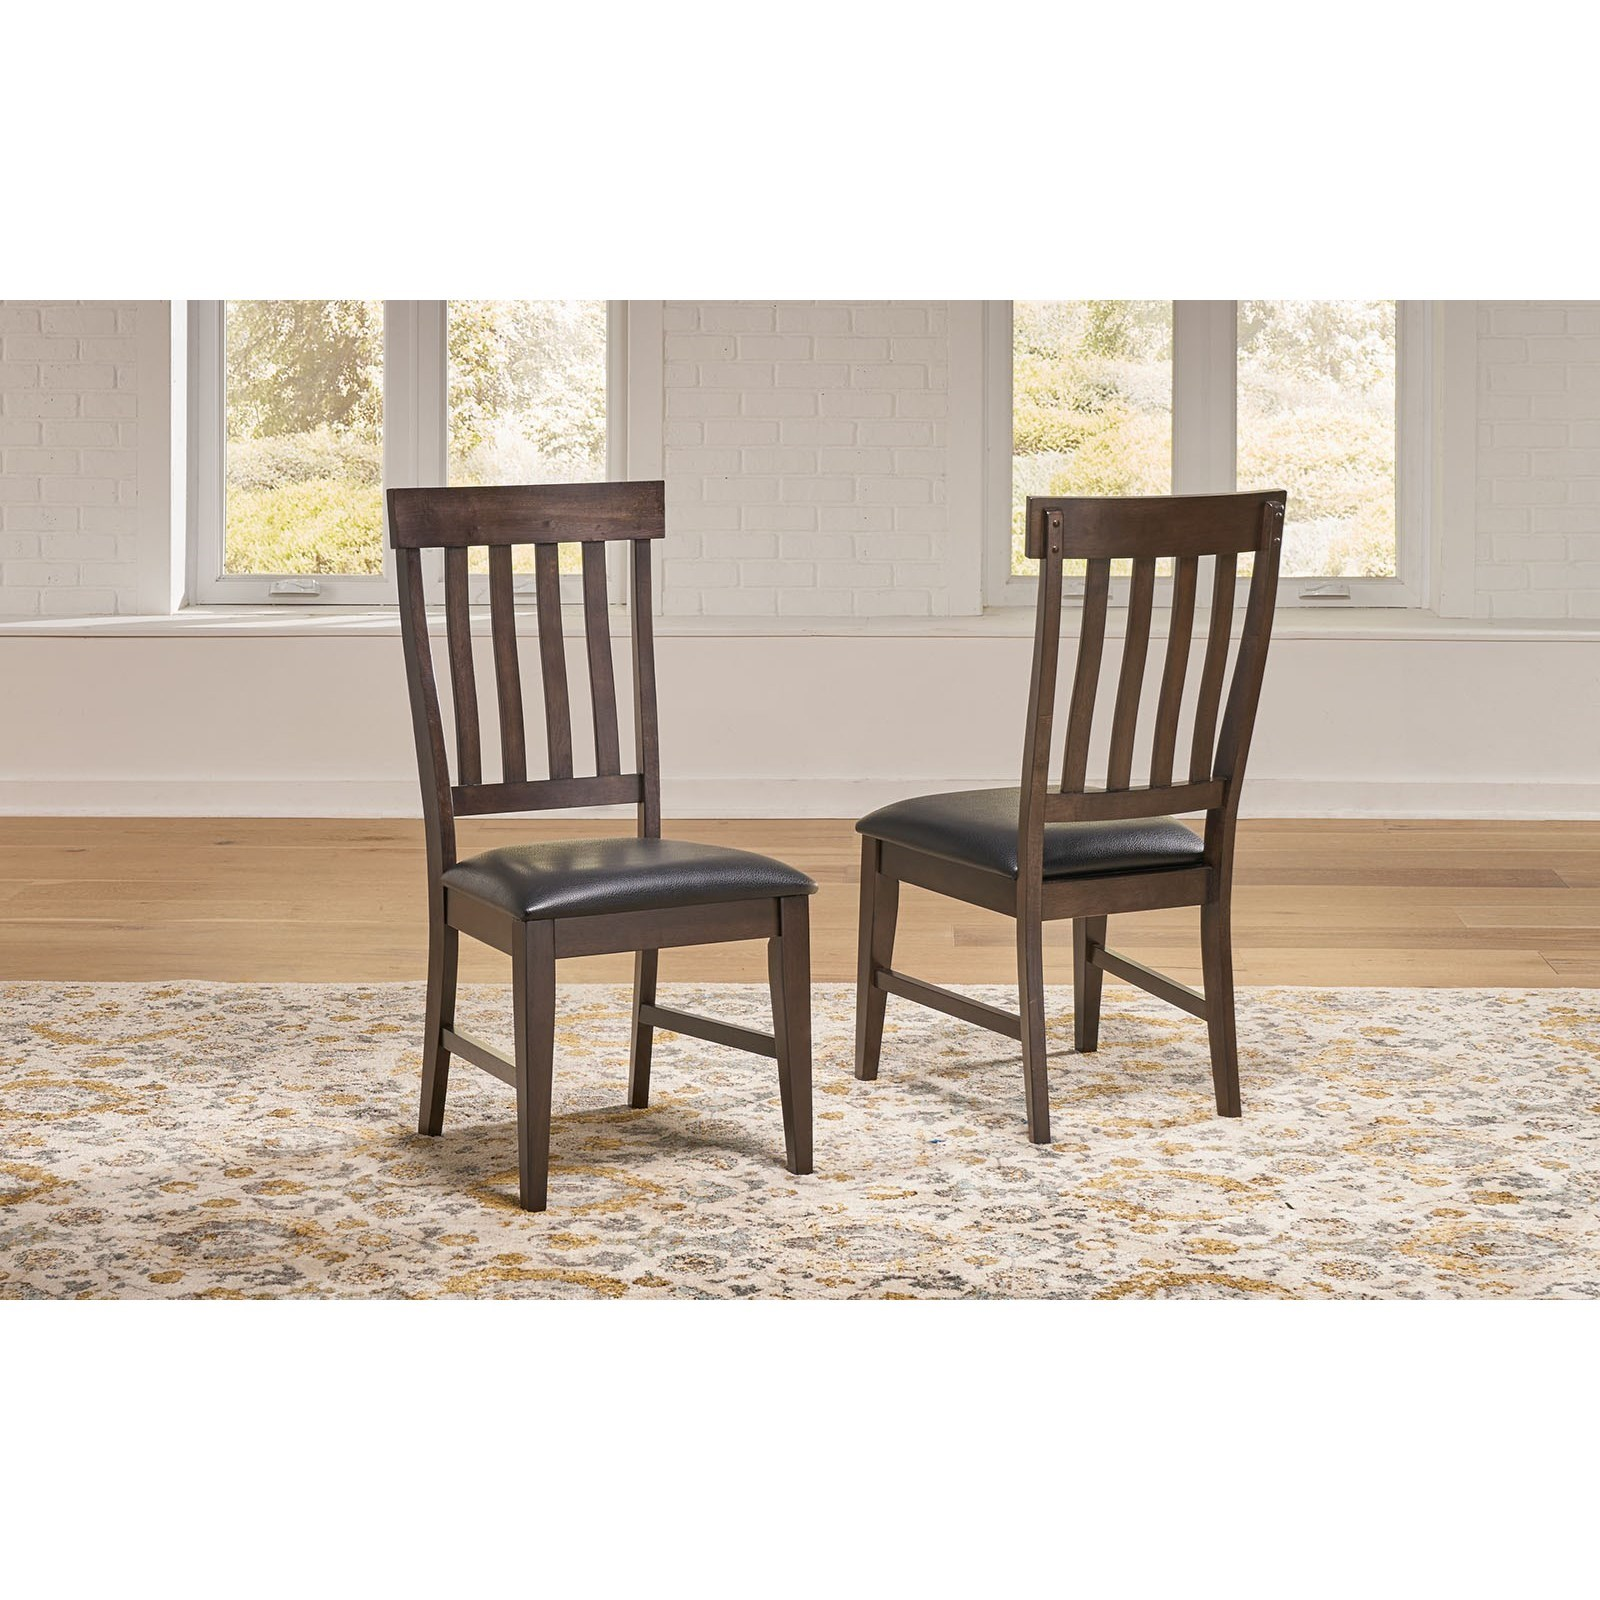 Bremerton Dining Chair by AAmerica at Zak's Home